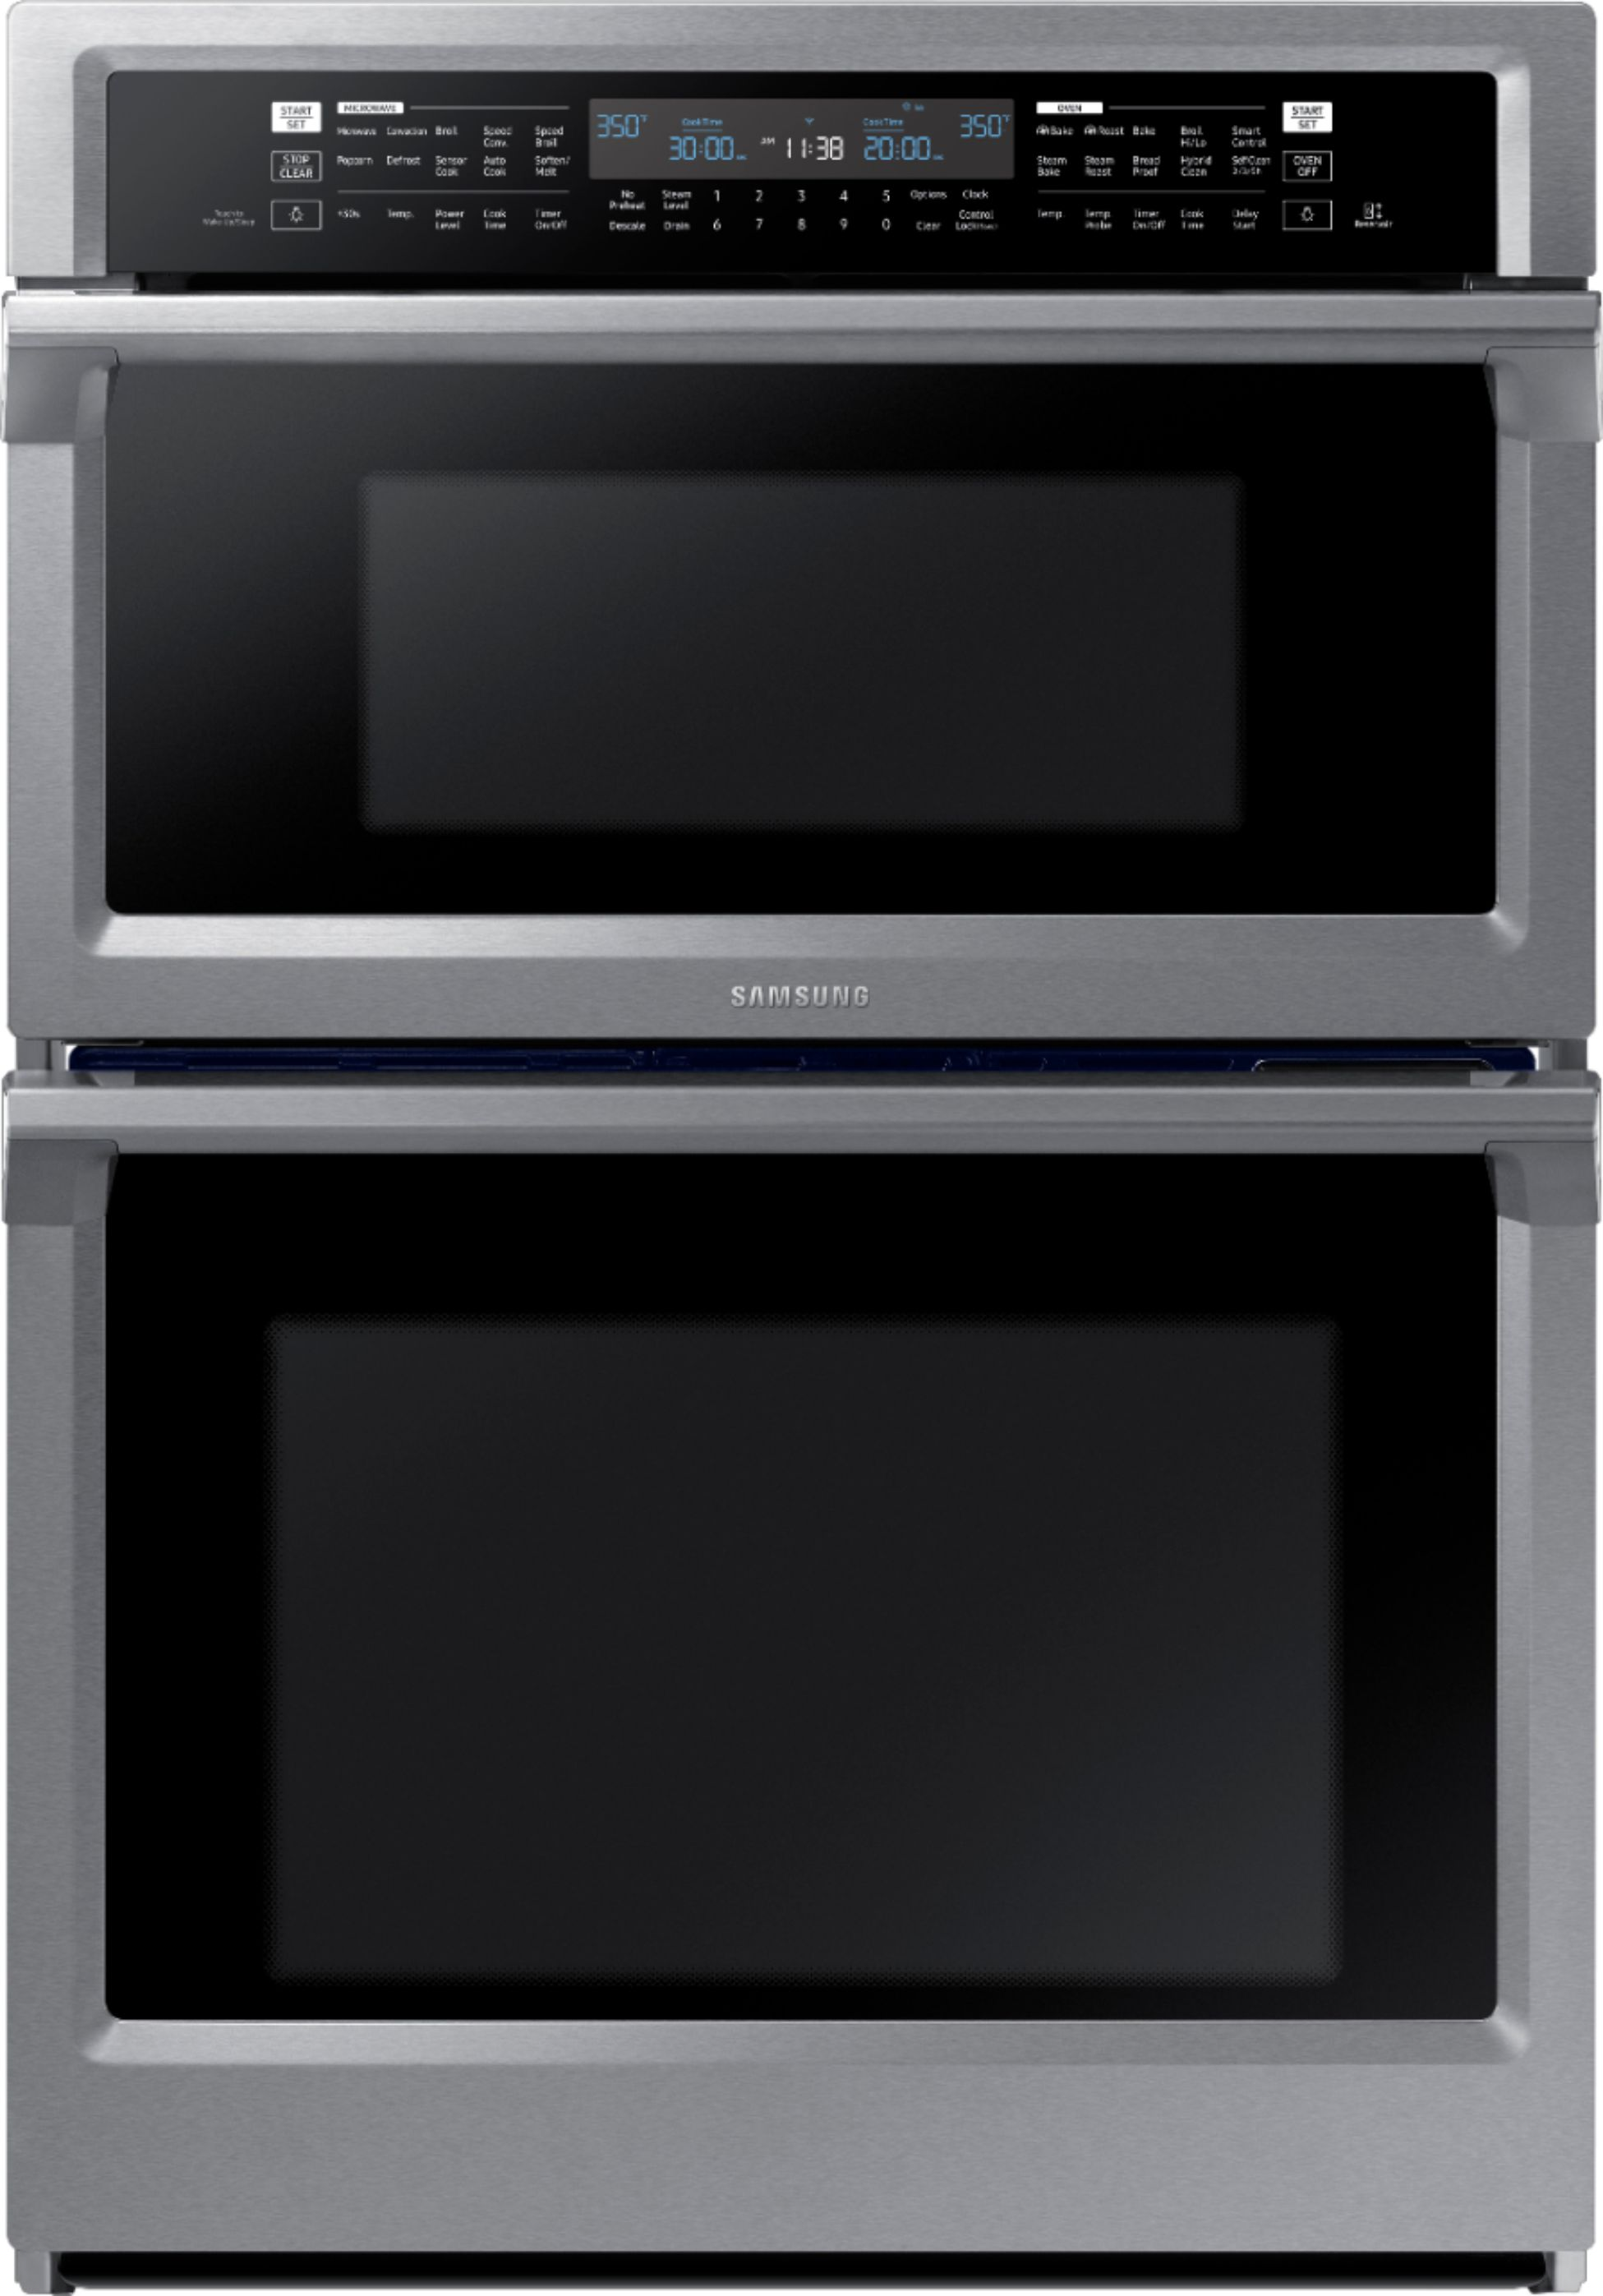 samsung 30 microwave combination wall oven with steam cook and wifi stainless steel